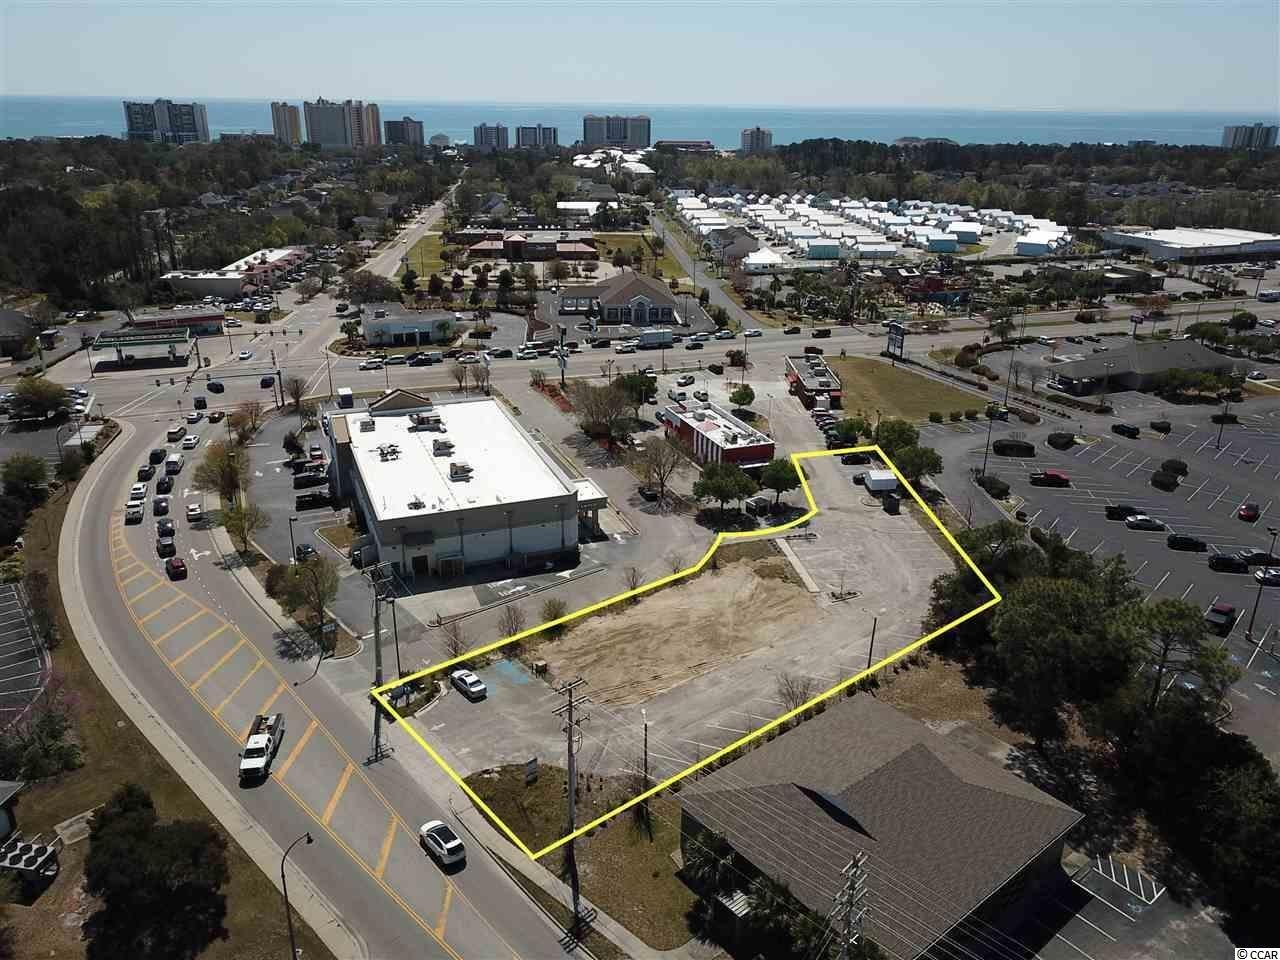 Over 2/3 of an acre (0.67 acres) commercial lot with asphalt parking lot of 36 parking spaces on 6th Ave S in the City of North Myrtle Beach, just south of Robert Edge Pkwy and Main St. Subject property has excellent access via the signalized intersection at 6th Ave S and also via the Hwy 17 entrances into KFC, Waffle House & Walgreens. Other Anchors nearby include 2 banks, North Strand ER, Big Lots.  This is a prime location for an office/professional, restaurant, retail, or other commercial use. HC zoning.